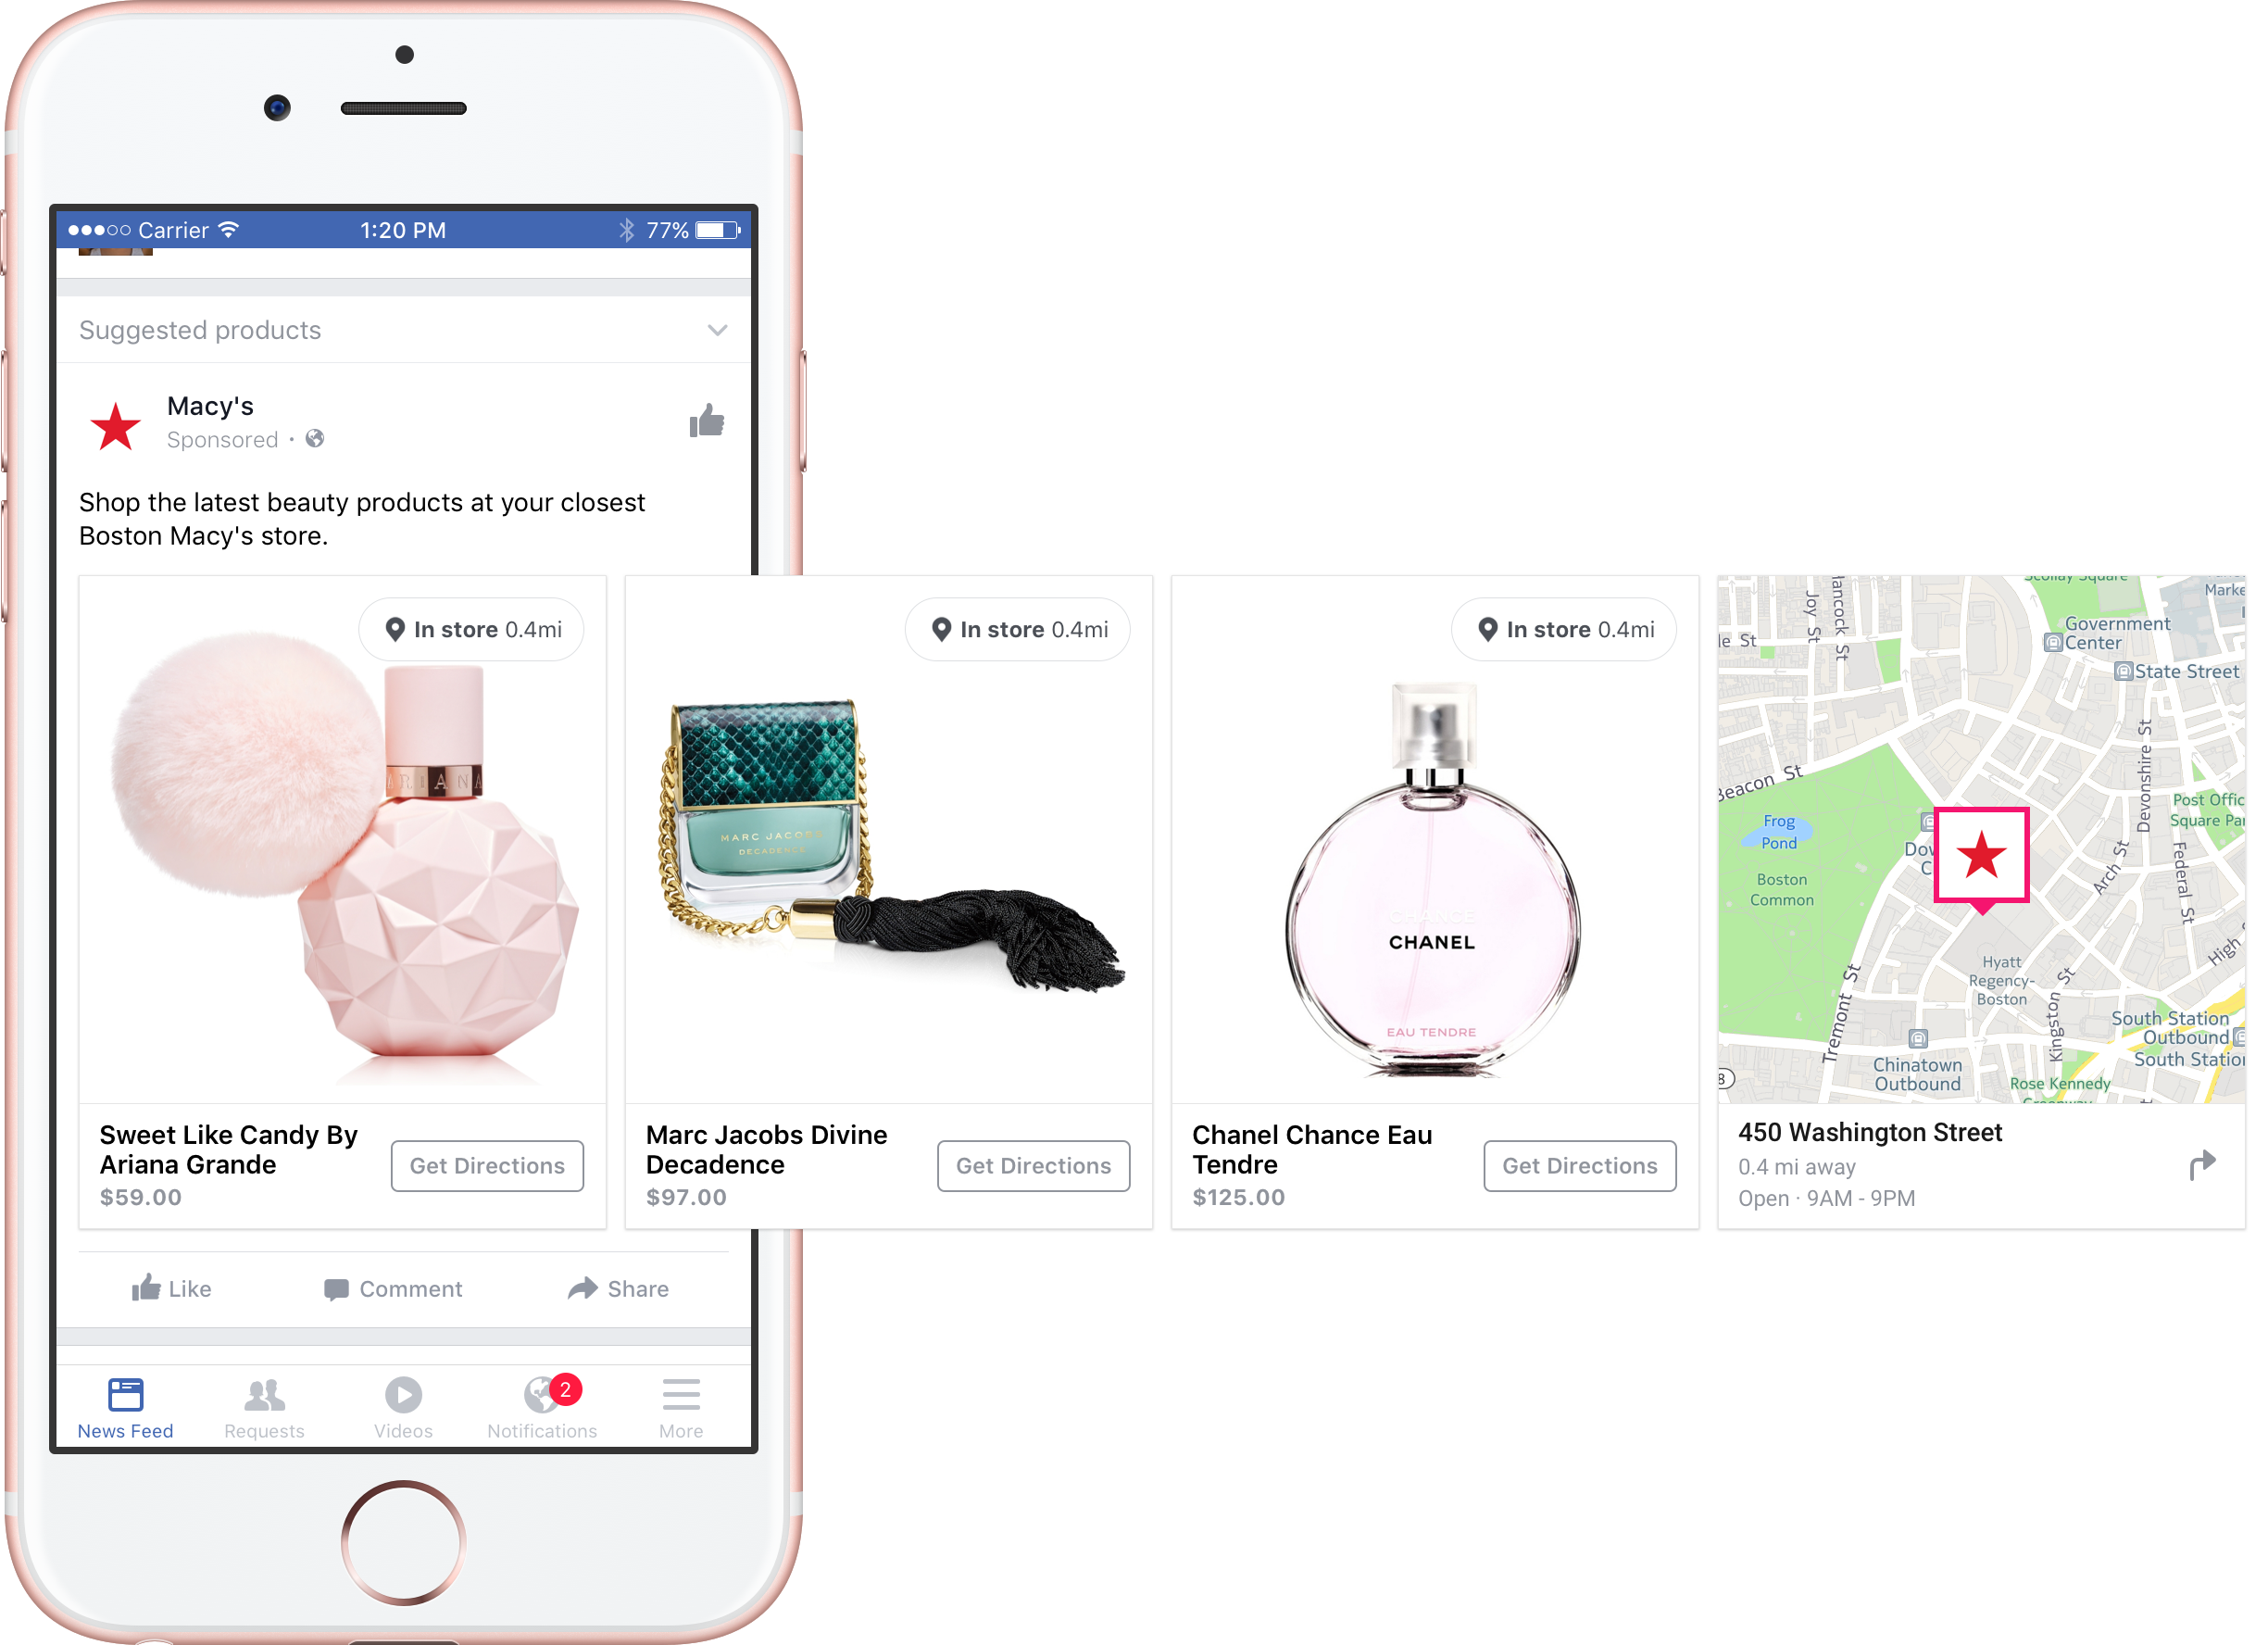 Facebook Adds New Display Options for Dynamic Ads to Improve Retargeting | Social Media Today